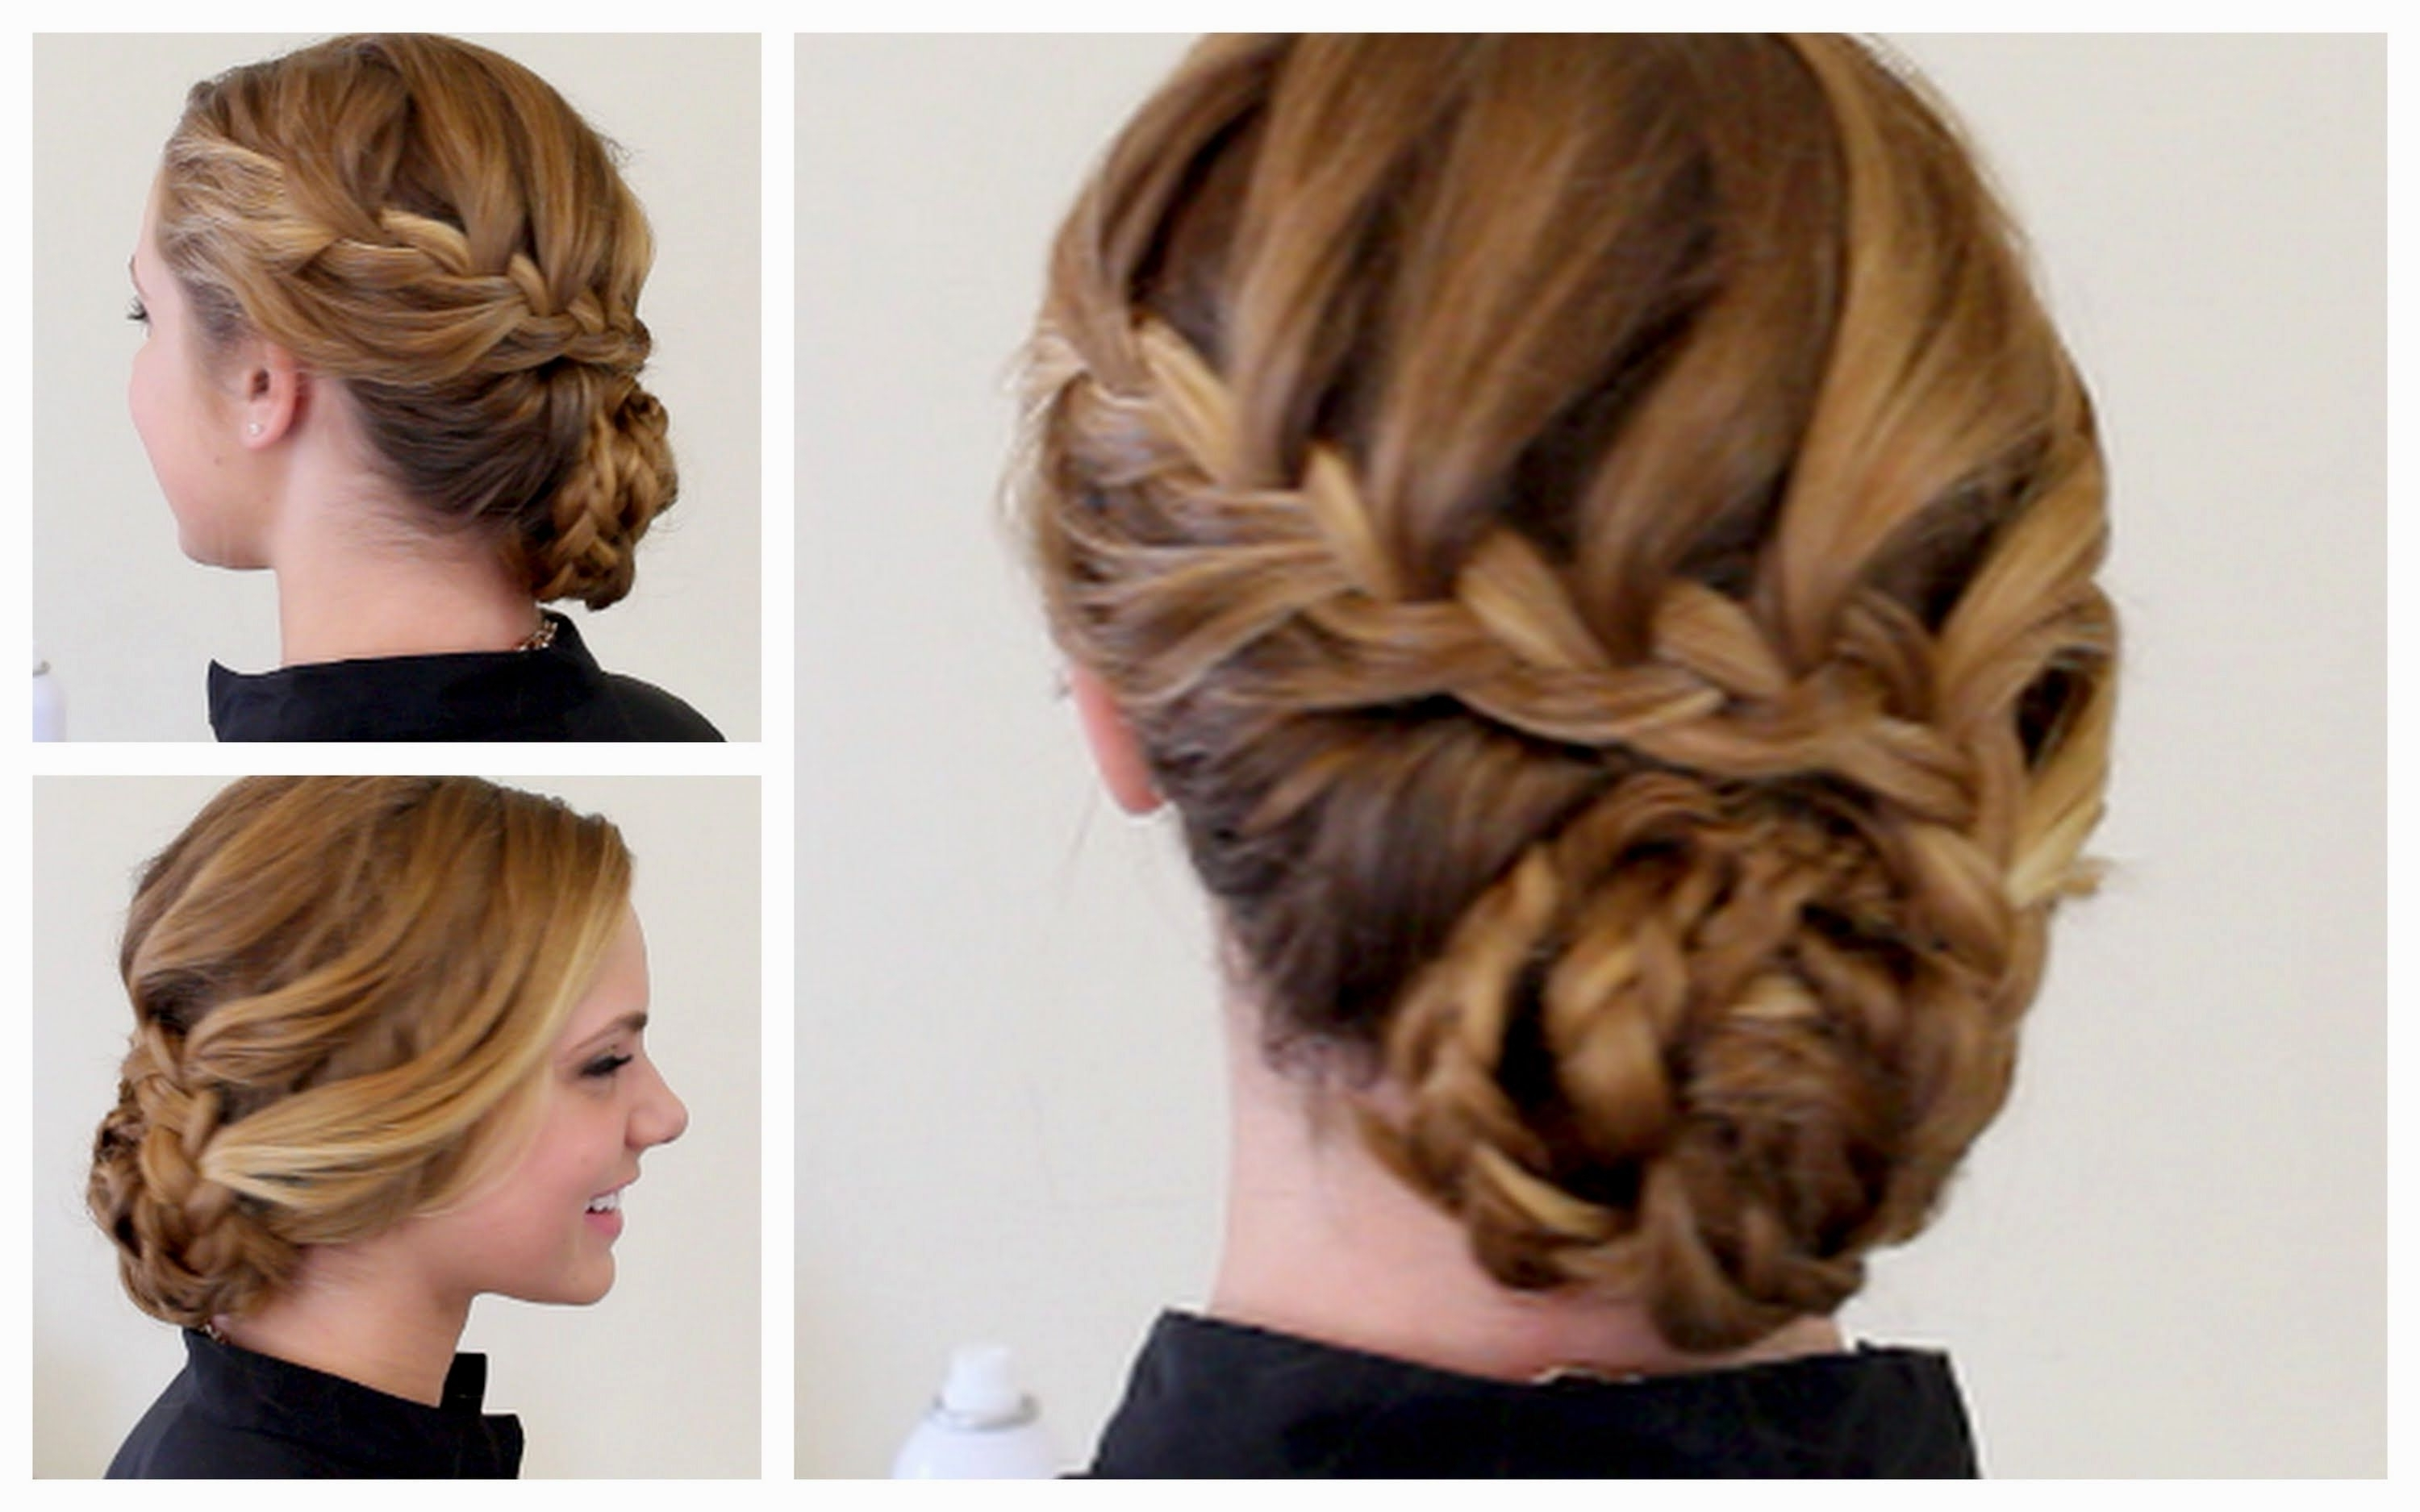 Hair Updos For Medium Hairstyle Fodo Women Man Formal Hairstyles Pertaining To Medium Hair Prom Updo Hairstyles (View 3 of 15)